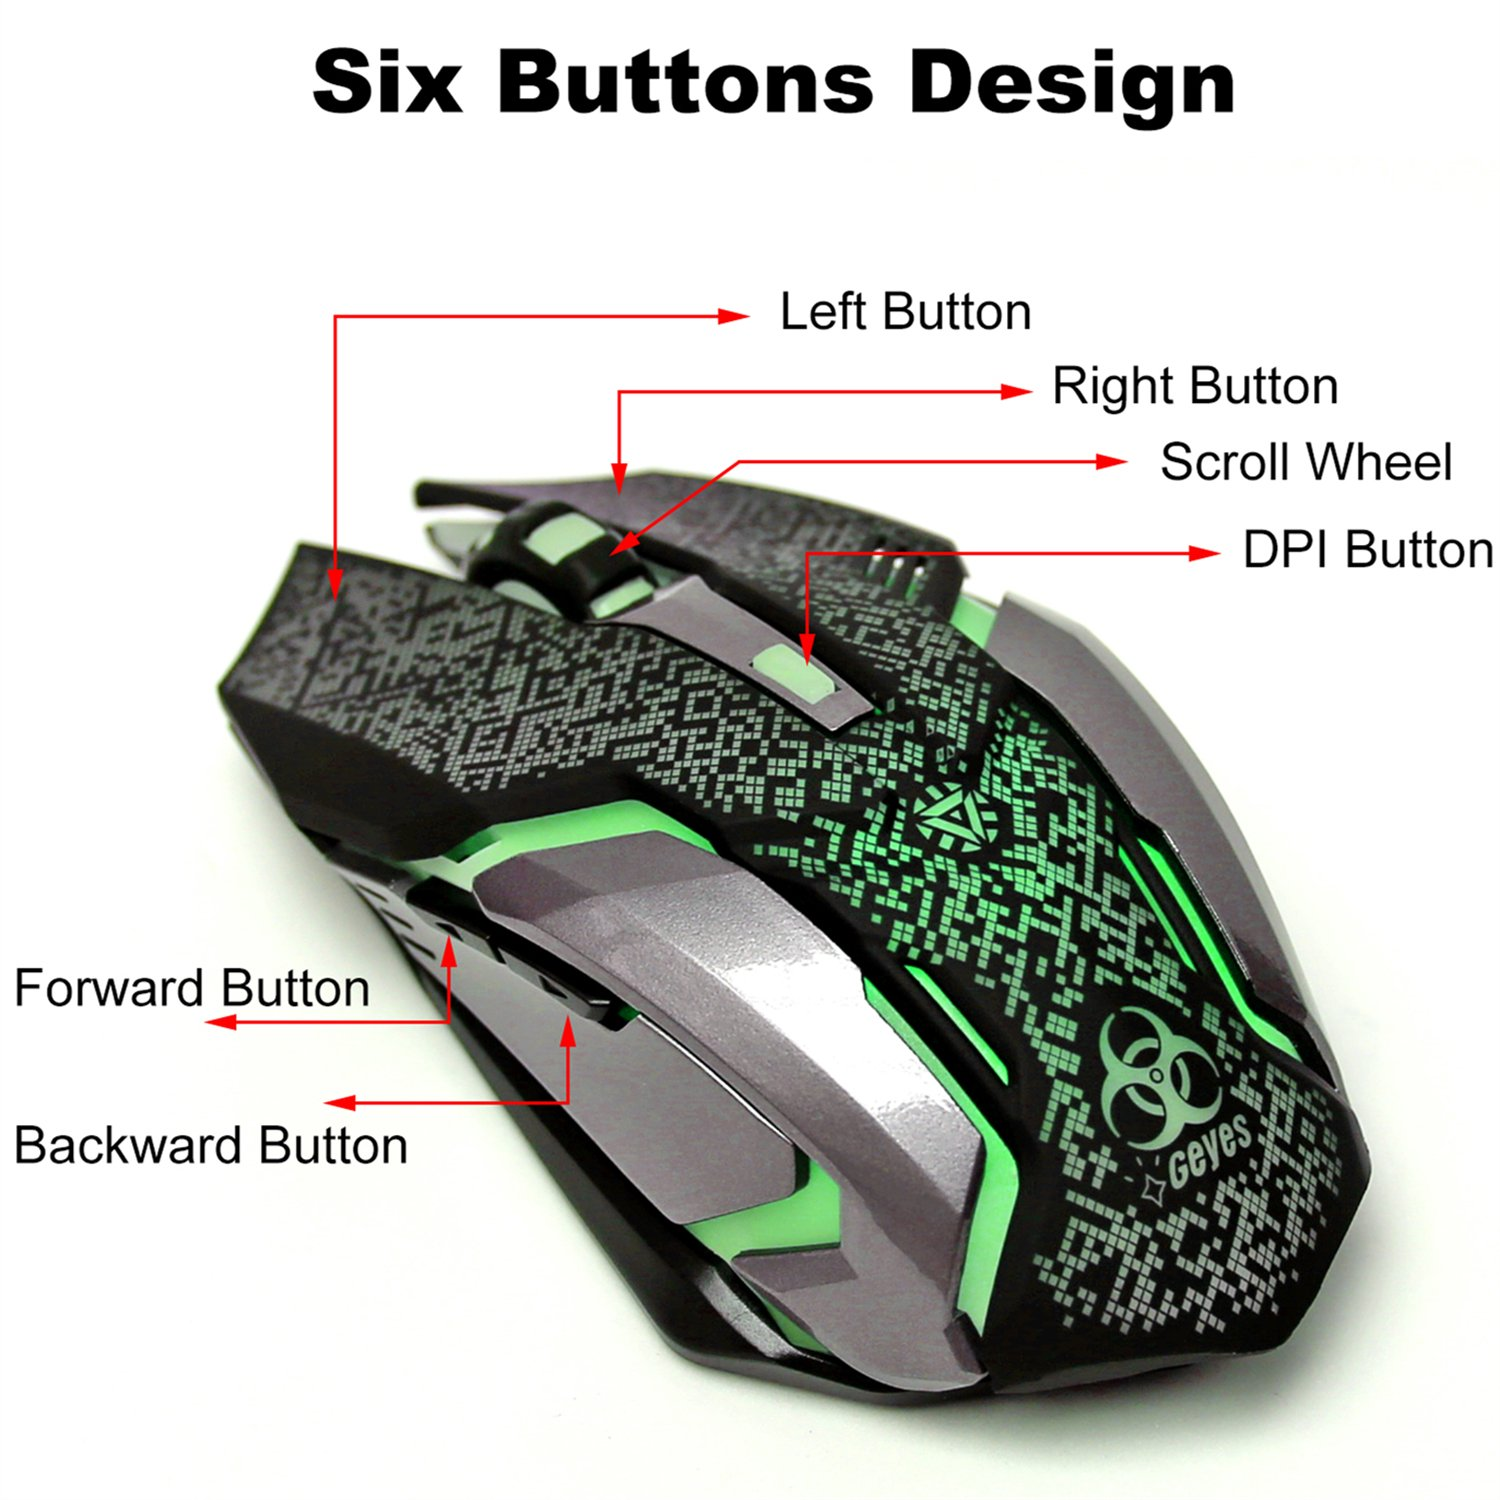 Alician CE Professional Wired Gaming Mouse 7 Button 5500 DPI LED Optical USB Computer Mouse Game Mouse Silent Mause for PC Black